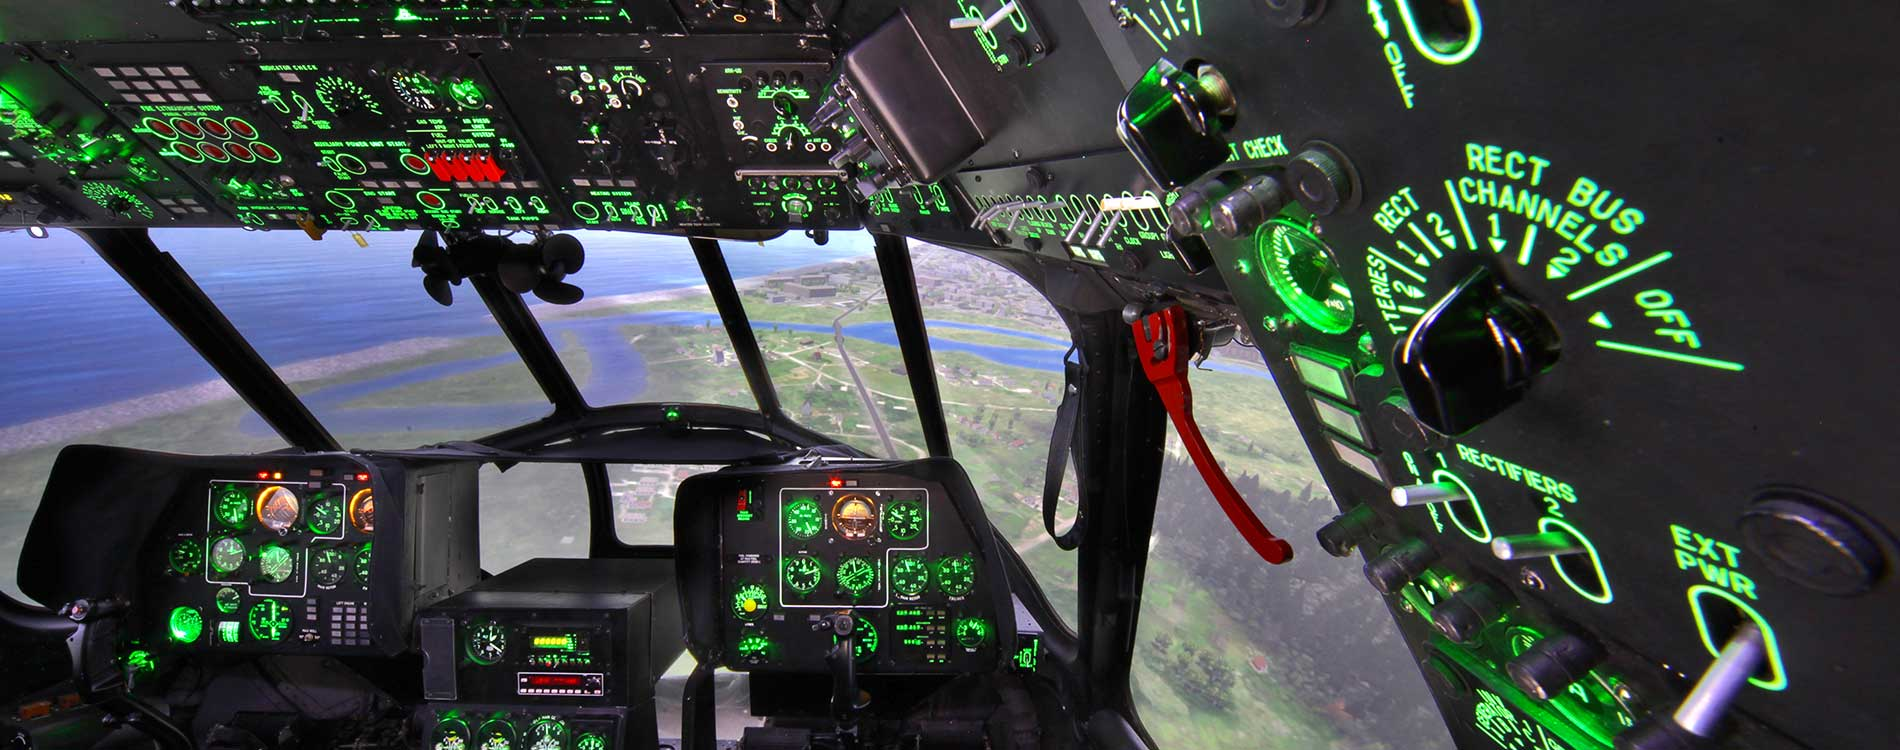 View from Interor Mi-17 Helicopter Simulator